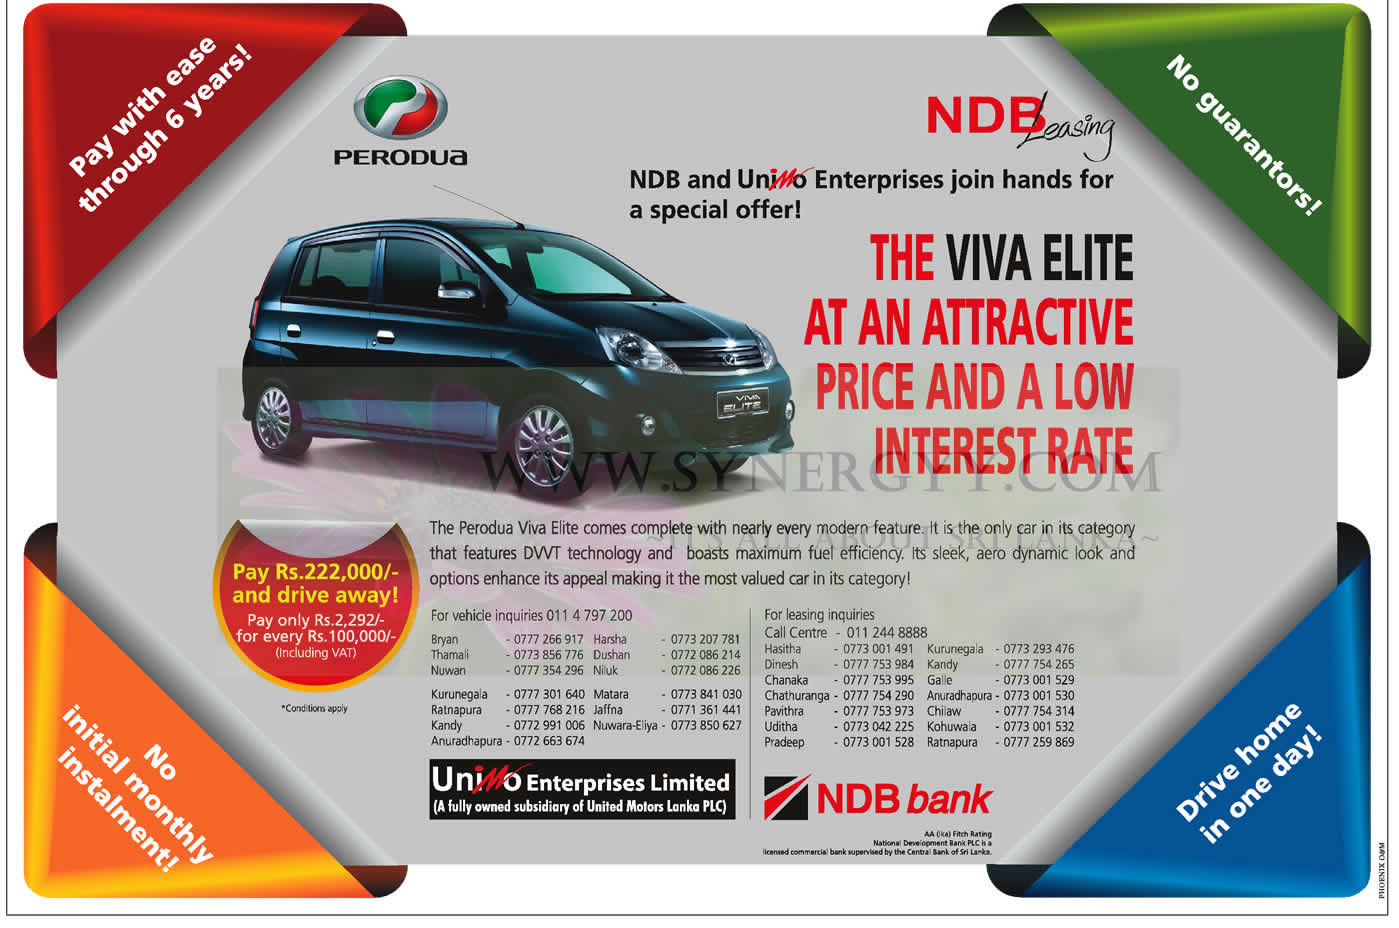 perodua elite leasing with ndb leasing for rs 222. Black Bedroom Furniture Sets. Home Design Ideas